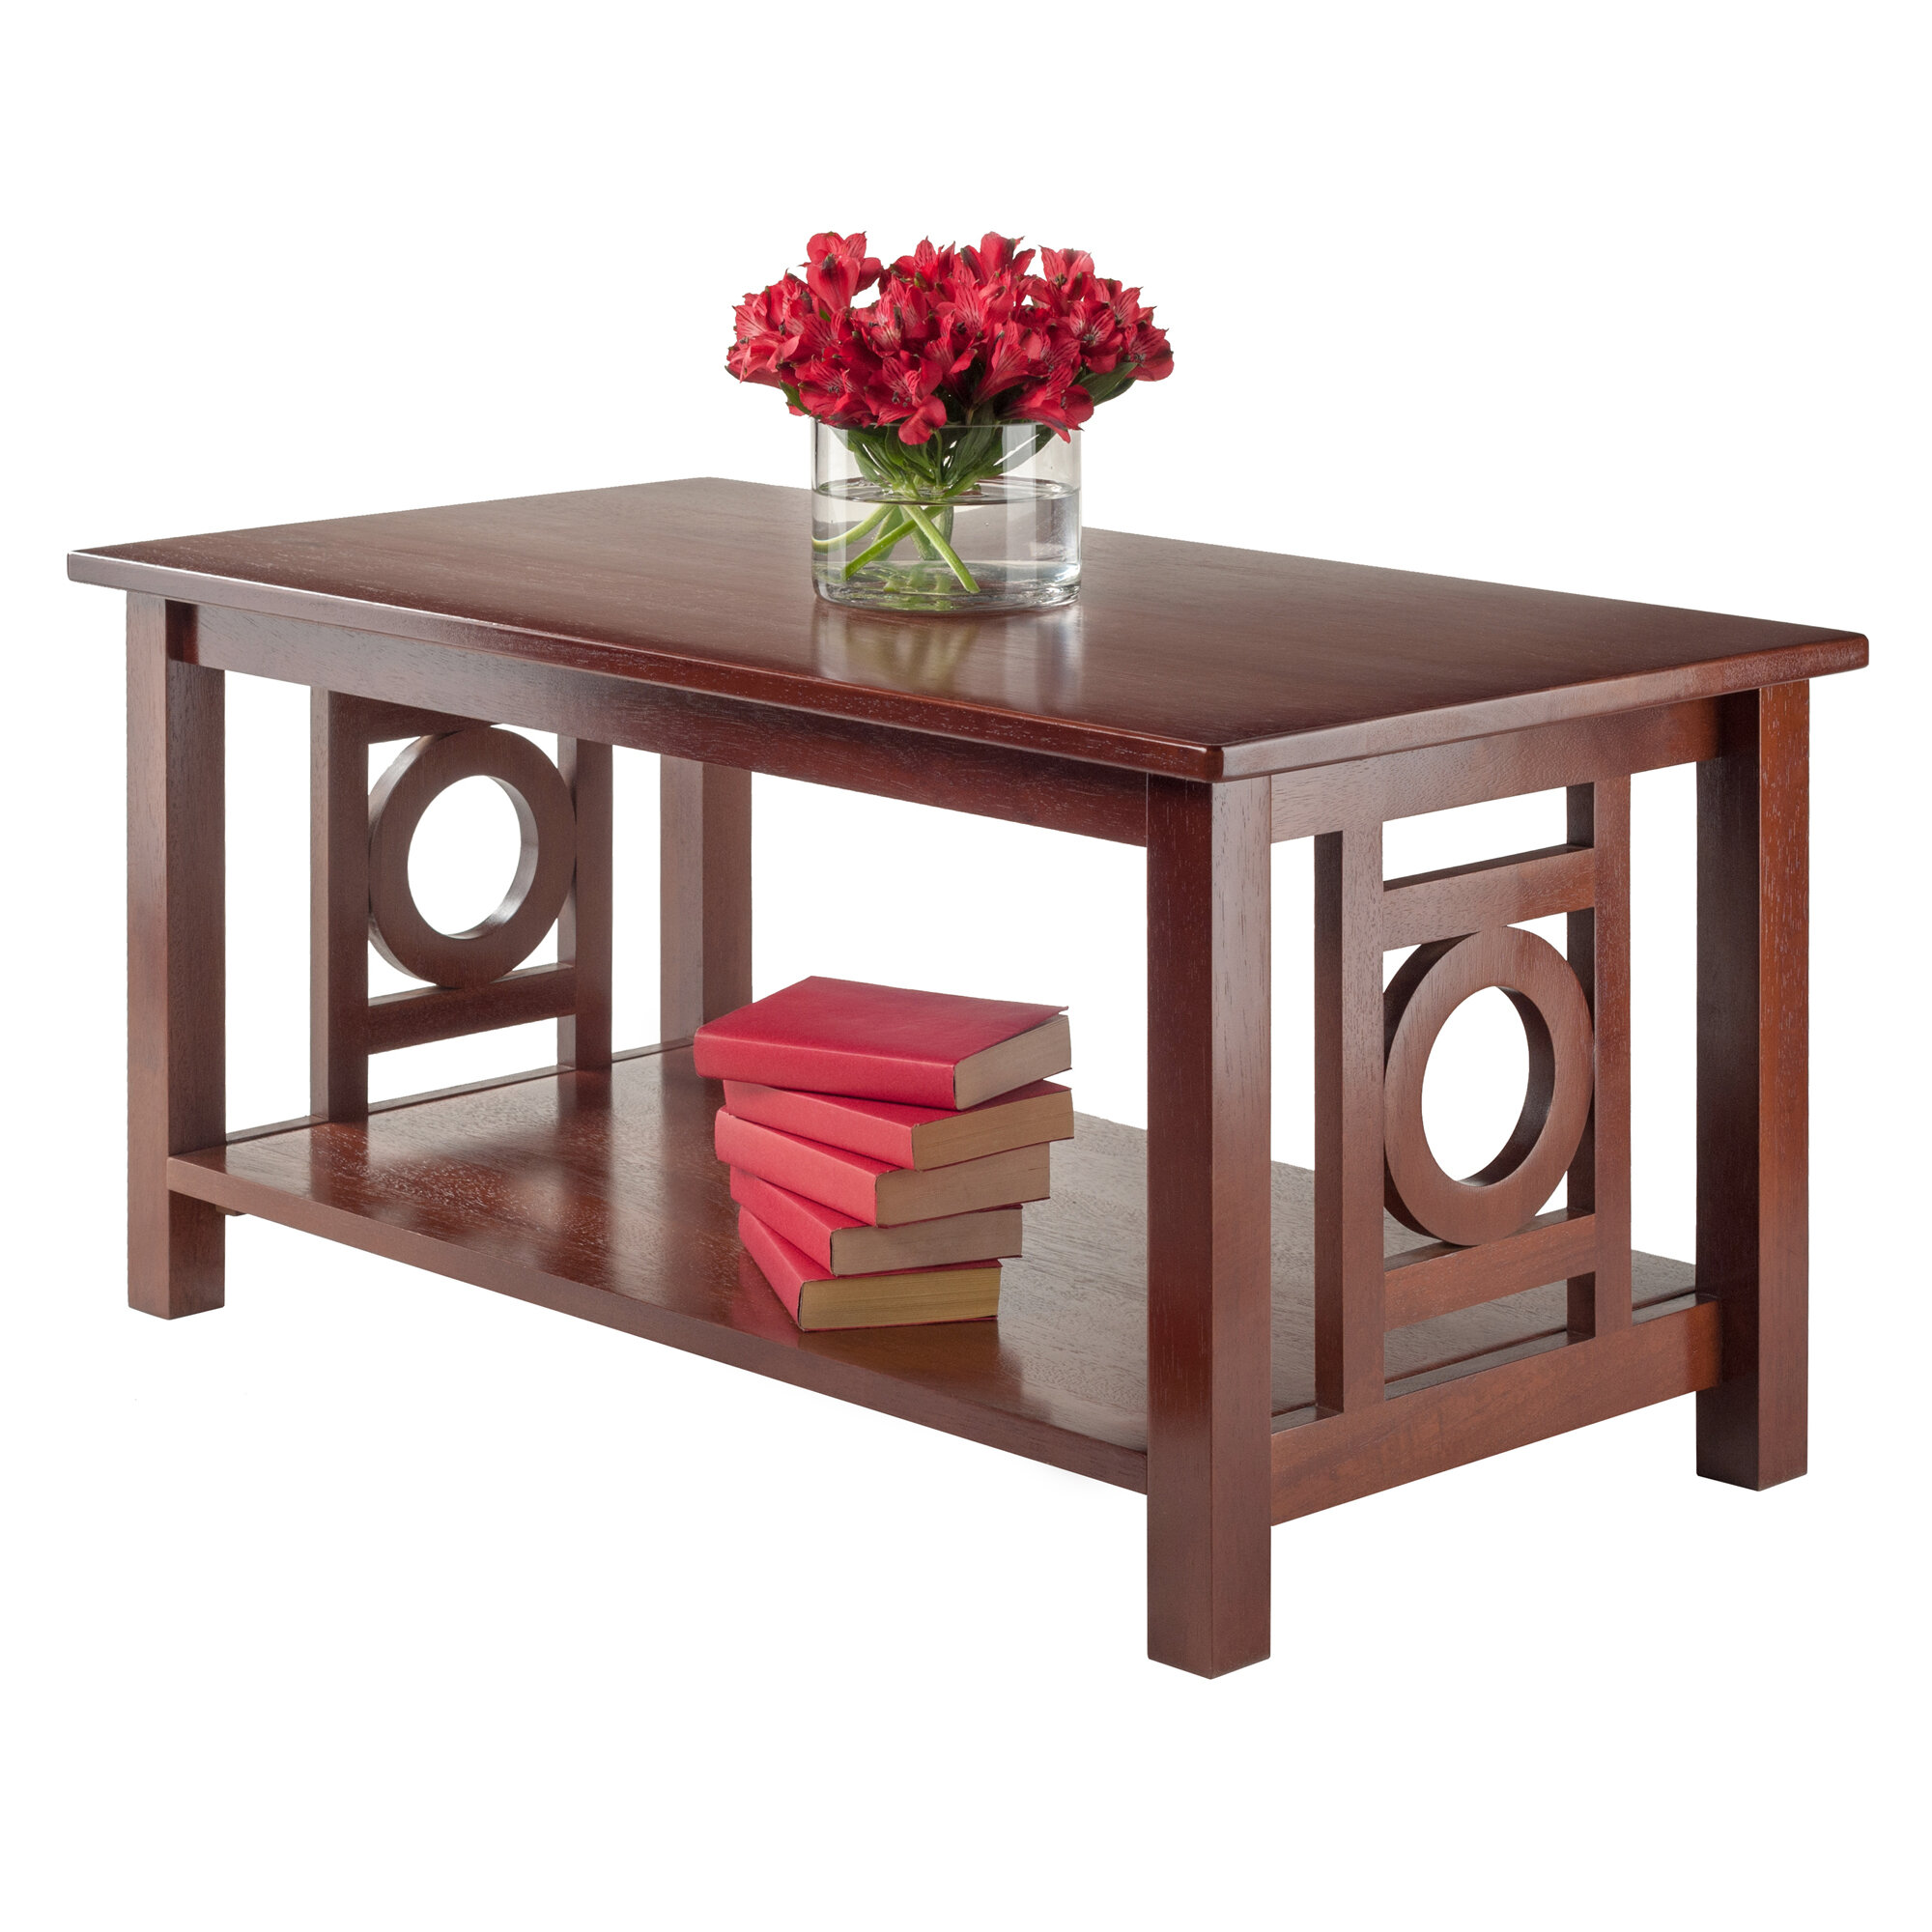 Olie Coffee Table Images Table Design Ideas